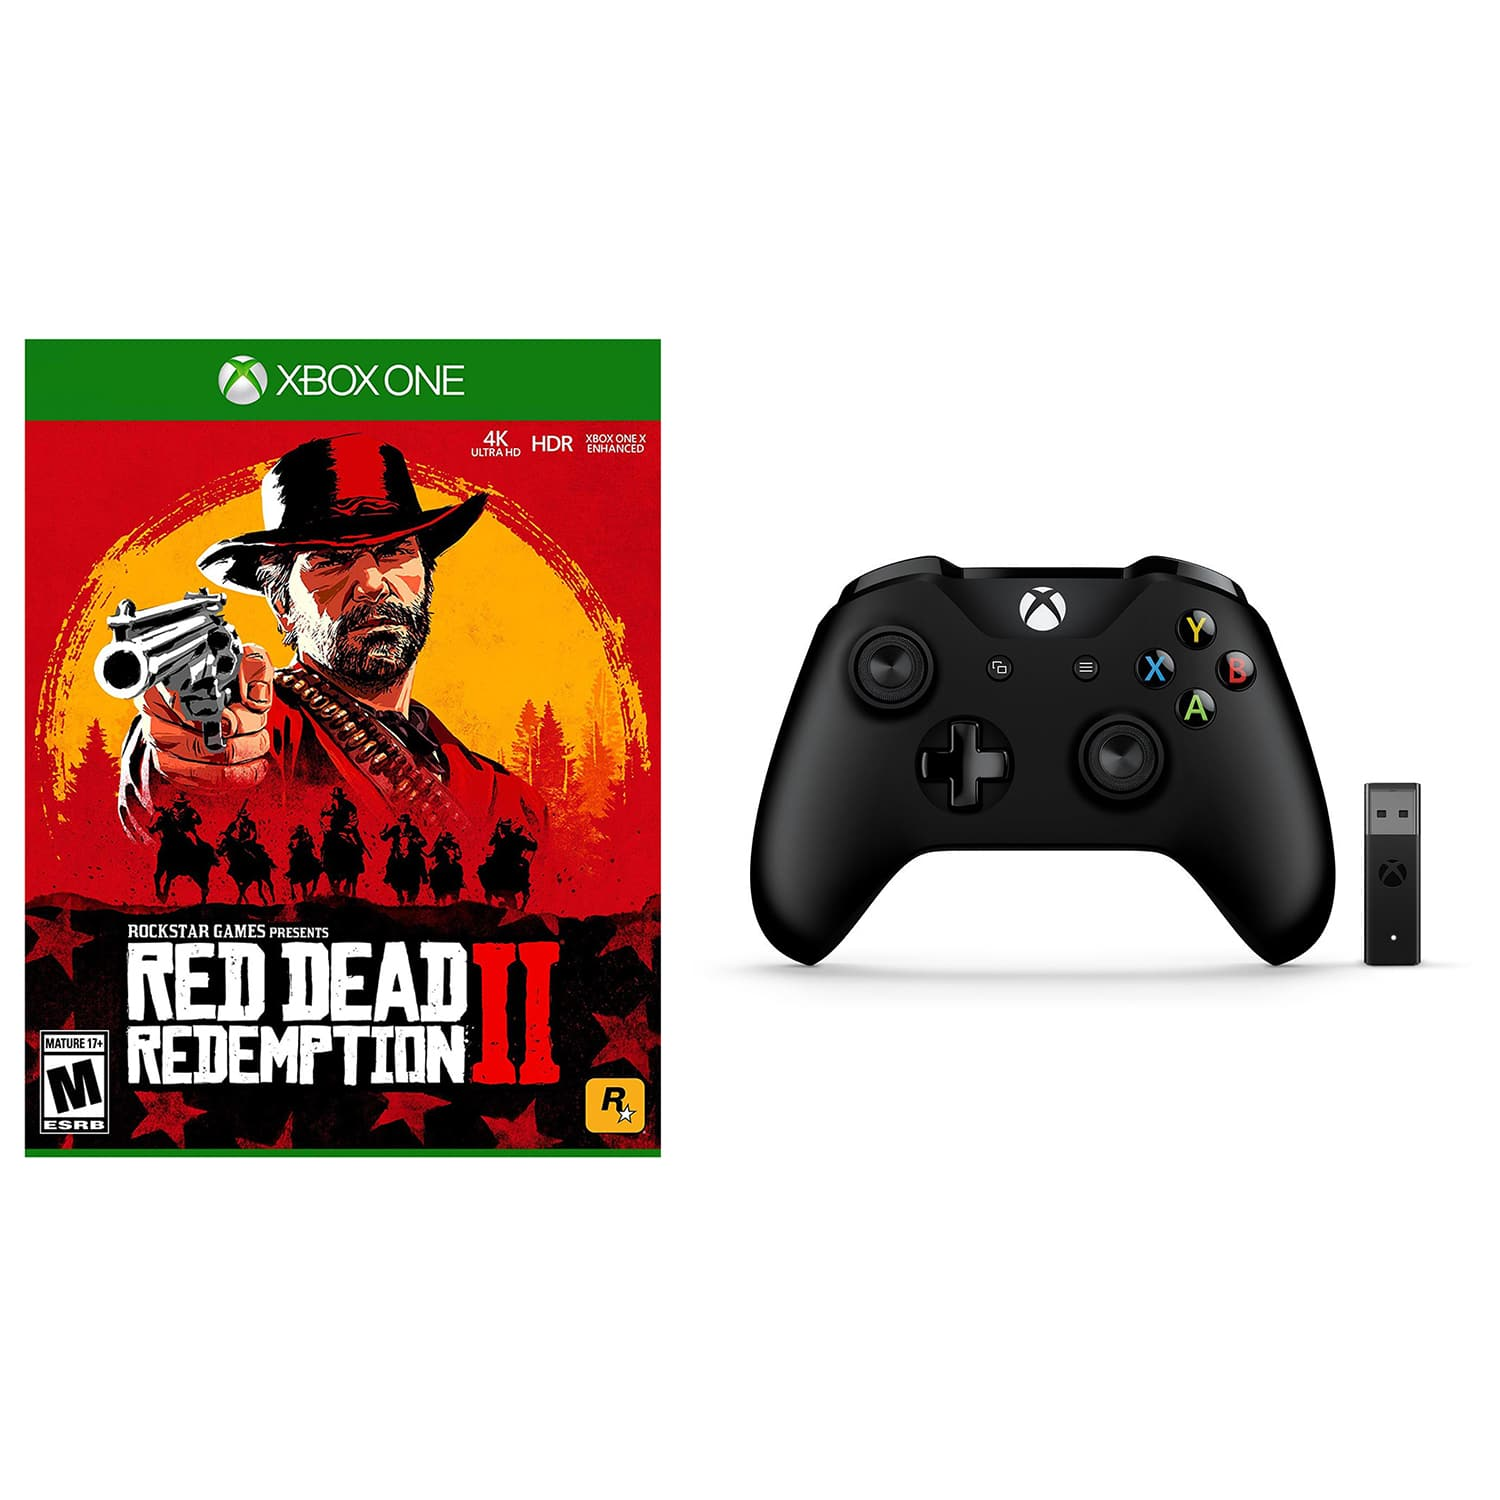 Xbox One Red Dead Redemption 2 and Wireless Controller with